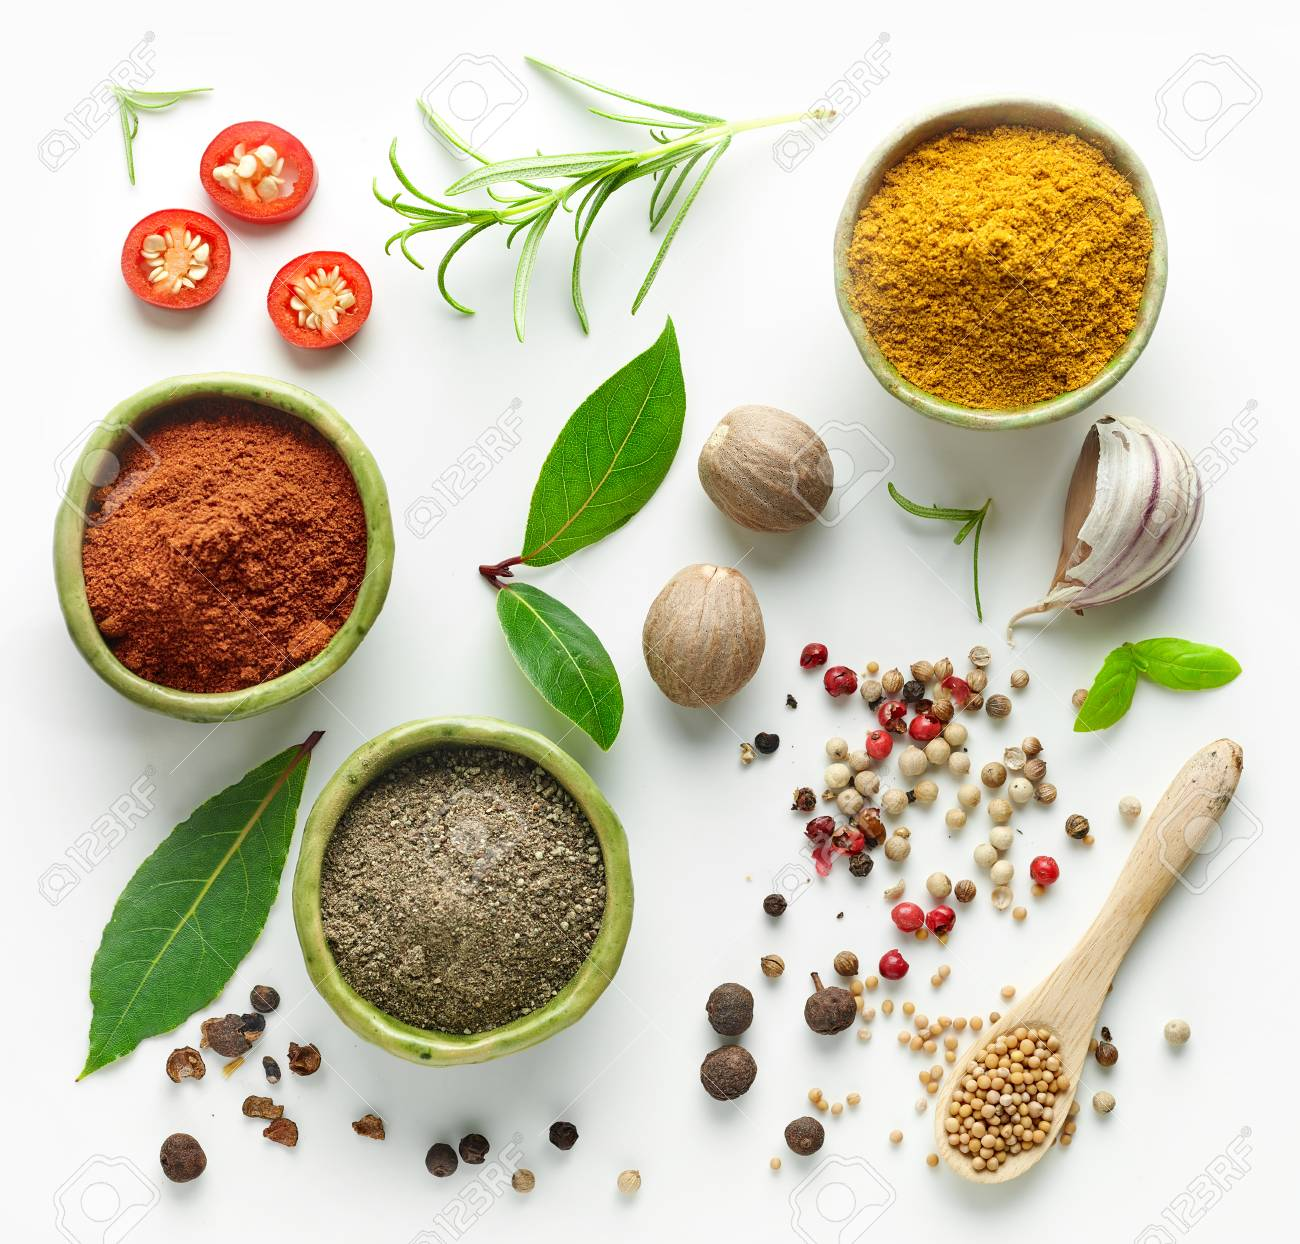 Various herb and spices, top view - 89285138